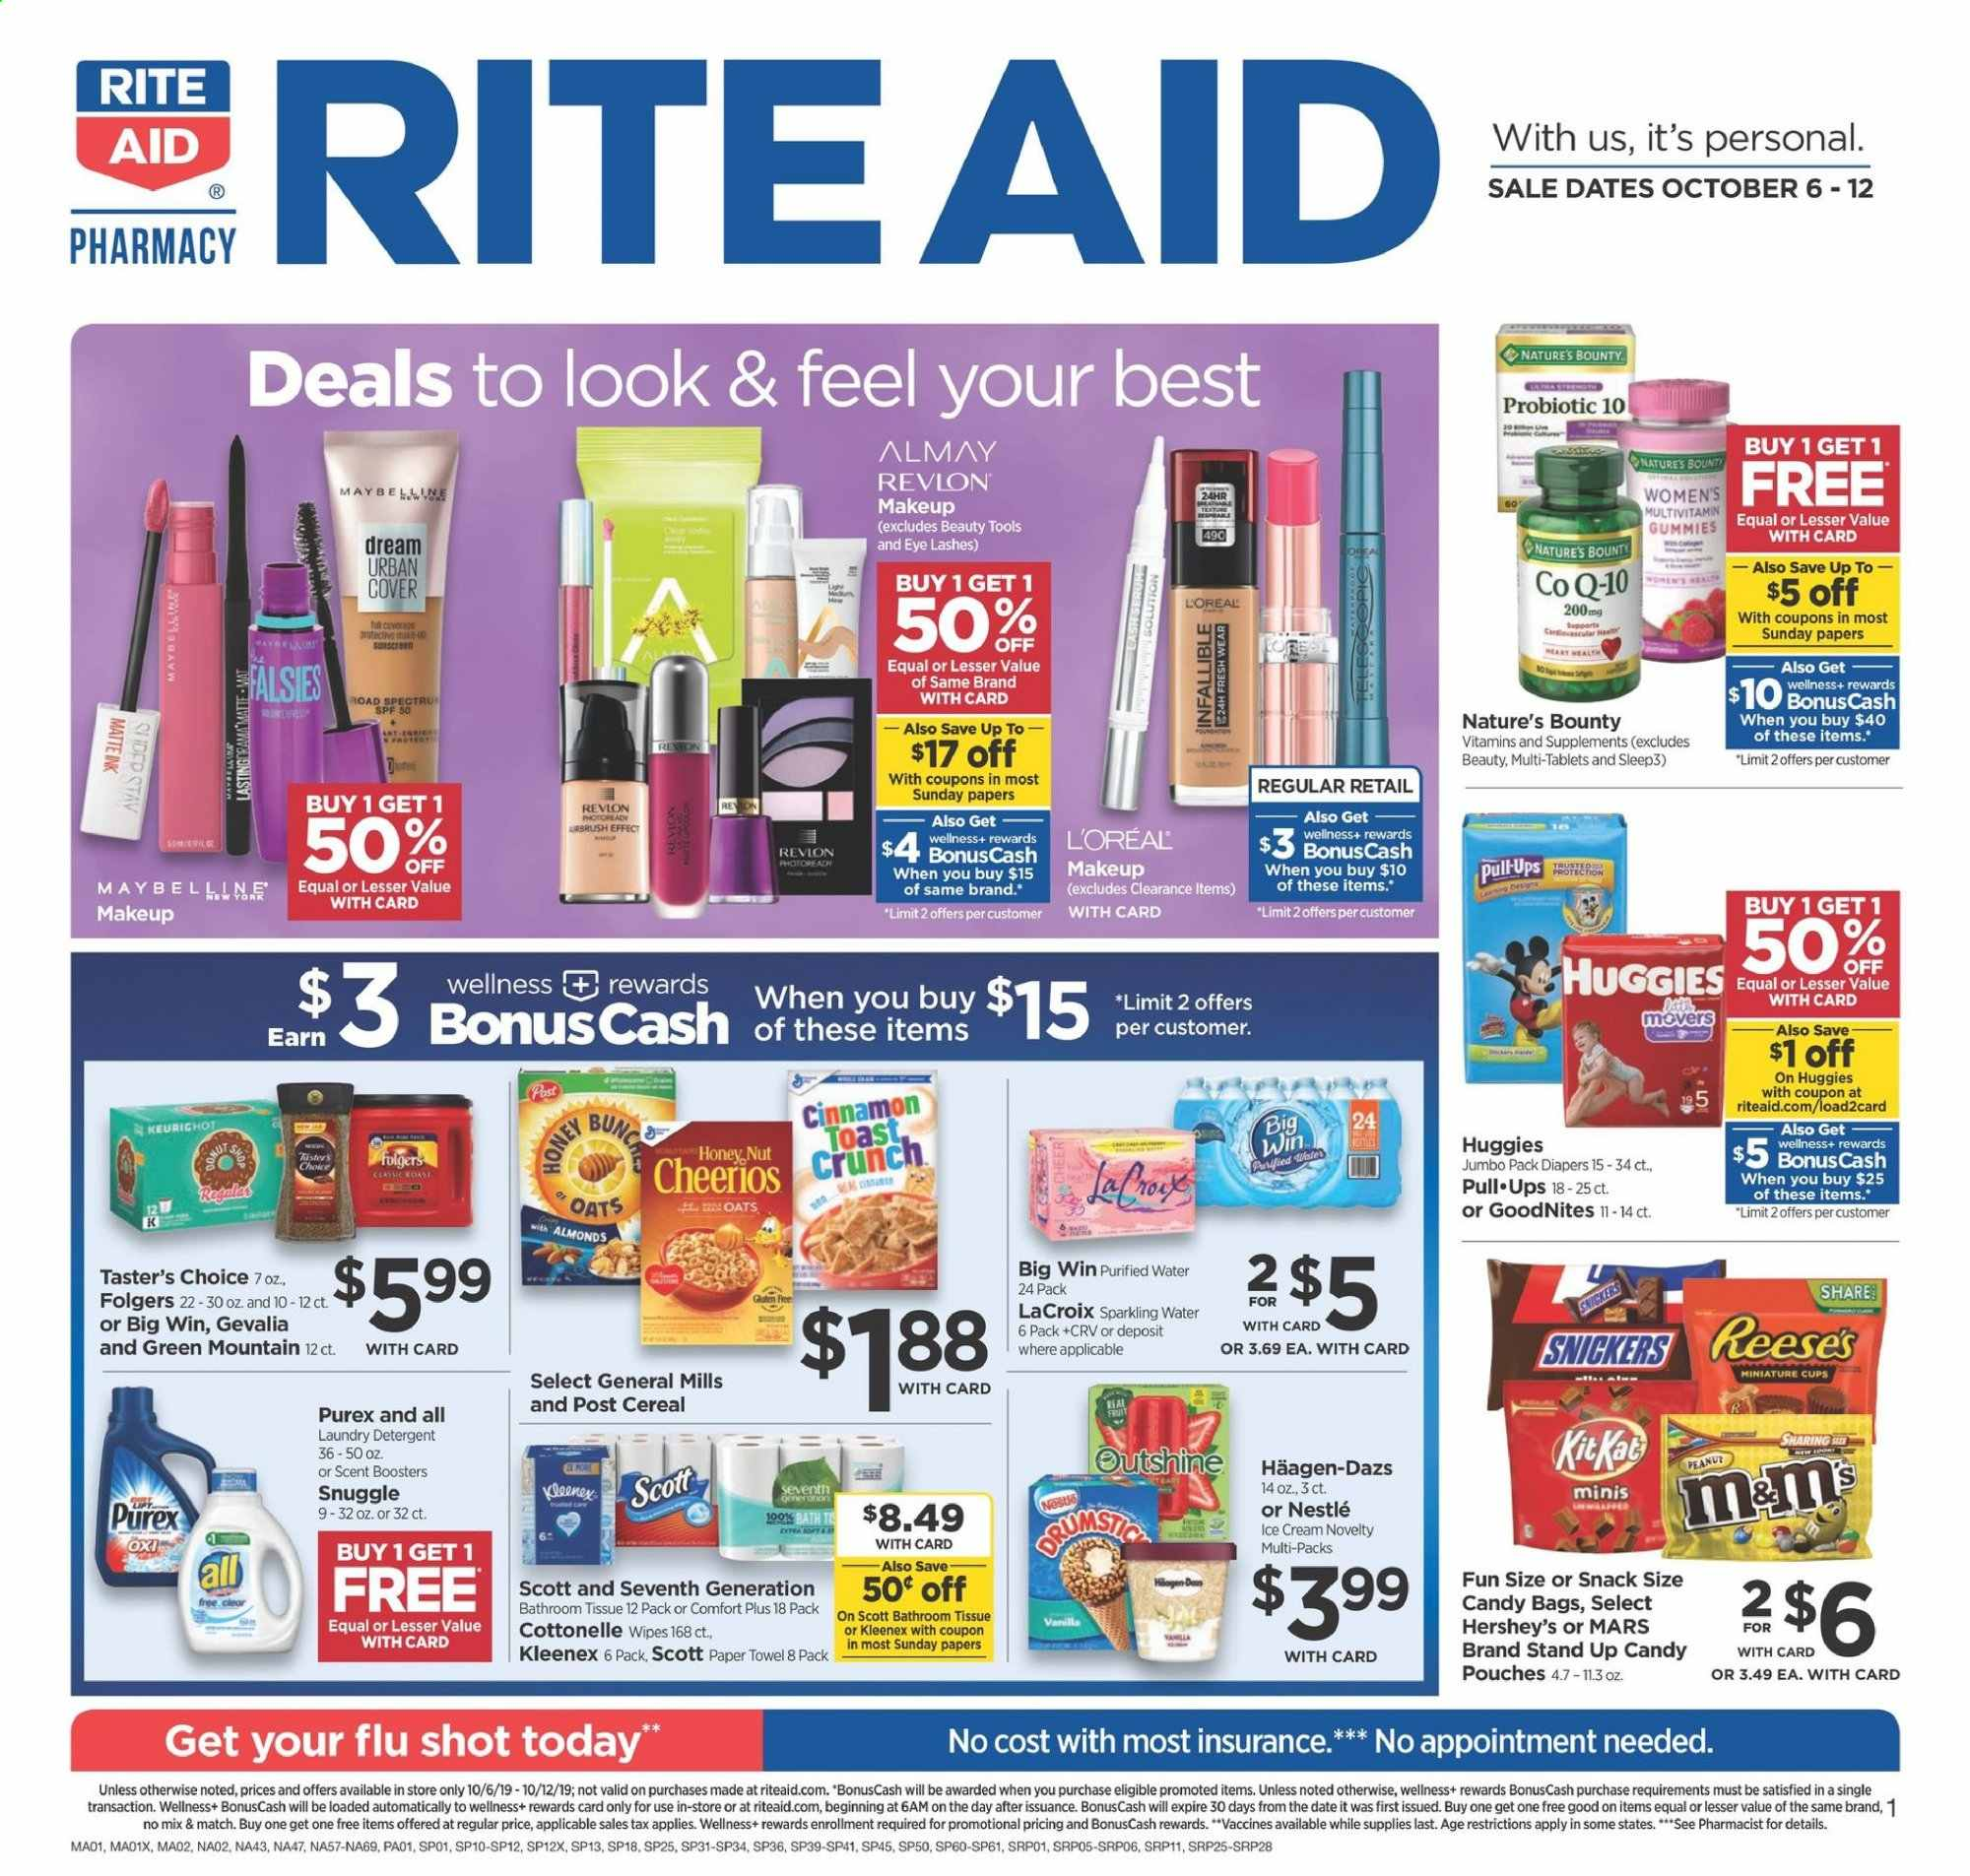 RITE AID Flyer - 10.06.2019 - 10.12.2019 - Sales products - Scott, ice cream, Nestlé, candy, Snickers, Bounty, Mars, snack, oats, cereals, Cheerios, almonds, peanuts, sparkling water, water, Folgers, Huggies, diapers, Cottonelle, Kleenex, paper towel, detergent, wipes, Snuggle, laundry detergent, Almay, L'Oréal, Revlon, tools, makeup, multivitamin, Nature's Bounty. Page 1.